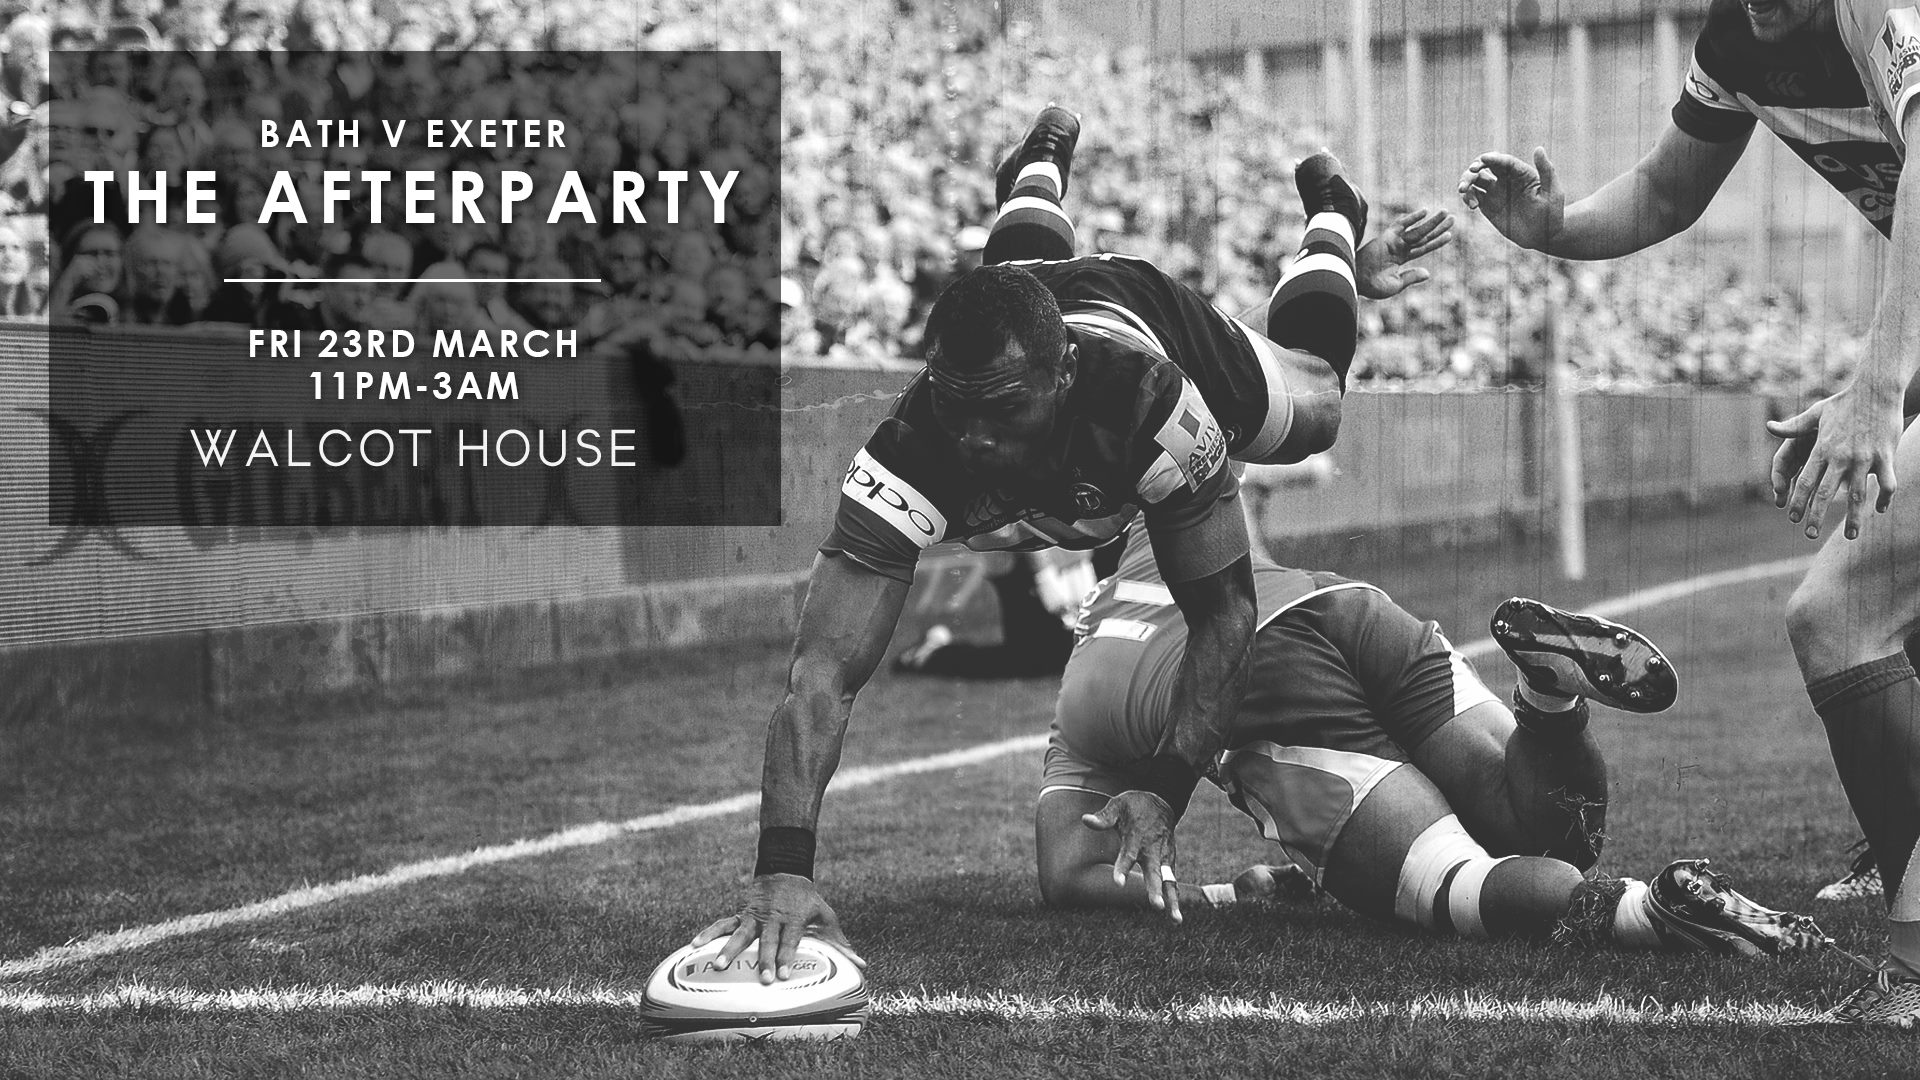 We are excited to be hosting the exclusive afterparty for Bath v Exeter!  Taking over the back room will be guest DJs Nick Auterac and Cooper Vuna!  As well as being pro rugby players both of them have been honing their DJ skills and are ready to unleash their tunes after being unleashed against Exeter Chiefs!  Nick will be playing all your favourite commercial house tunes whilst Cooper will be spinning all of the best of RnB - this is not to be missed.  For Table Reservations: www.walcothousebath.com  or call 01225 314938.  Event: https://www.facebook.com/events/986519931500504/